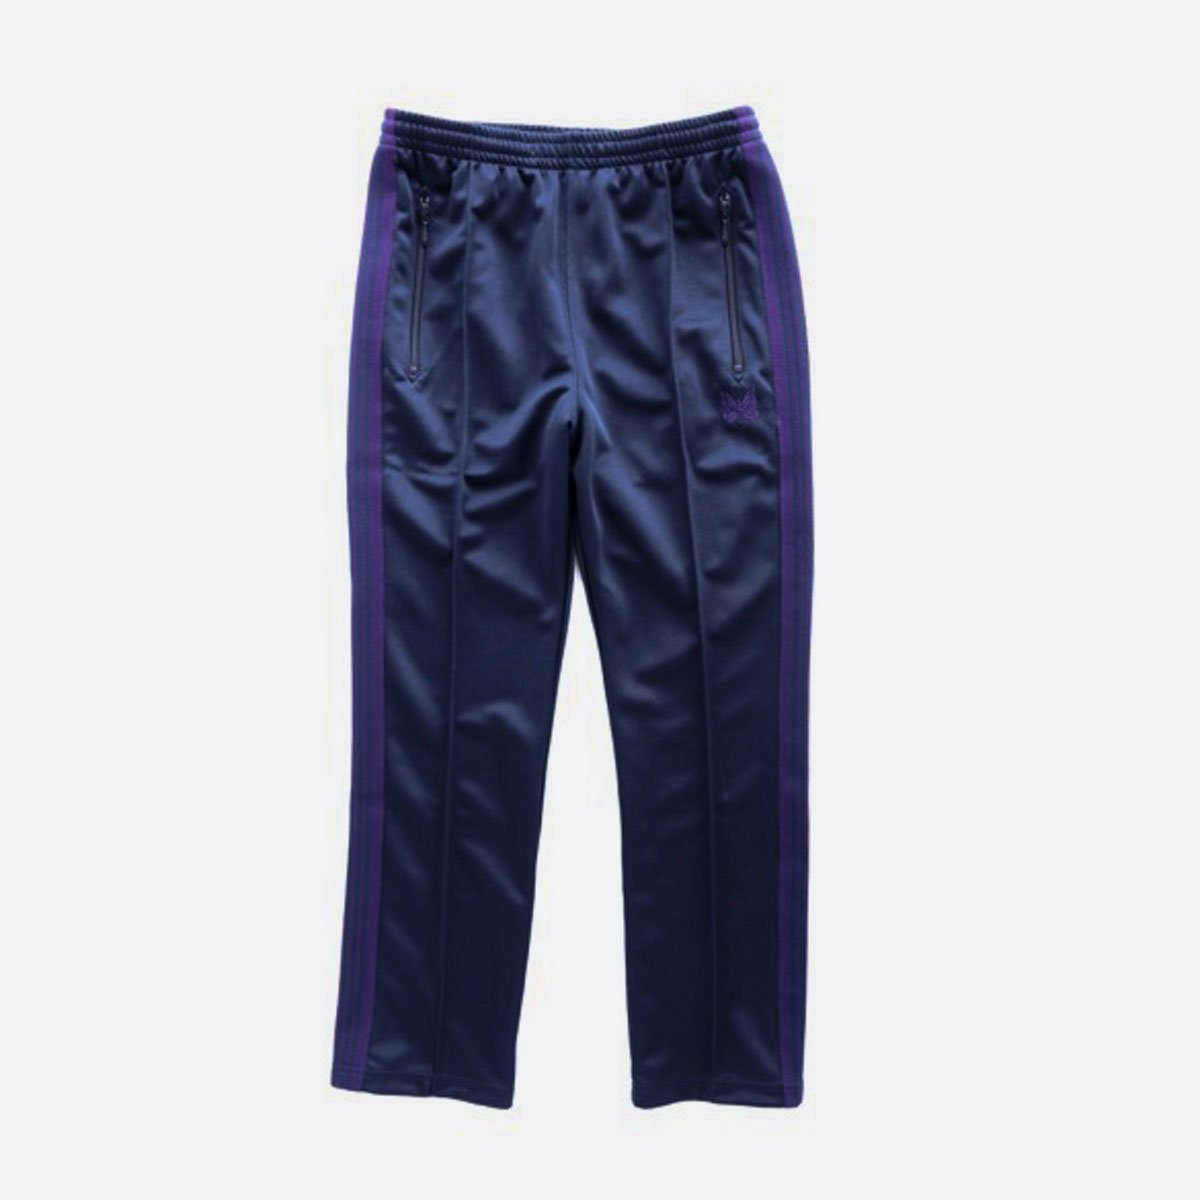 NEEDLES  NARROW TRACK PANT - POLY SMOOTH  (NAVY)